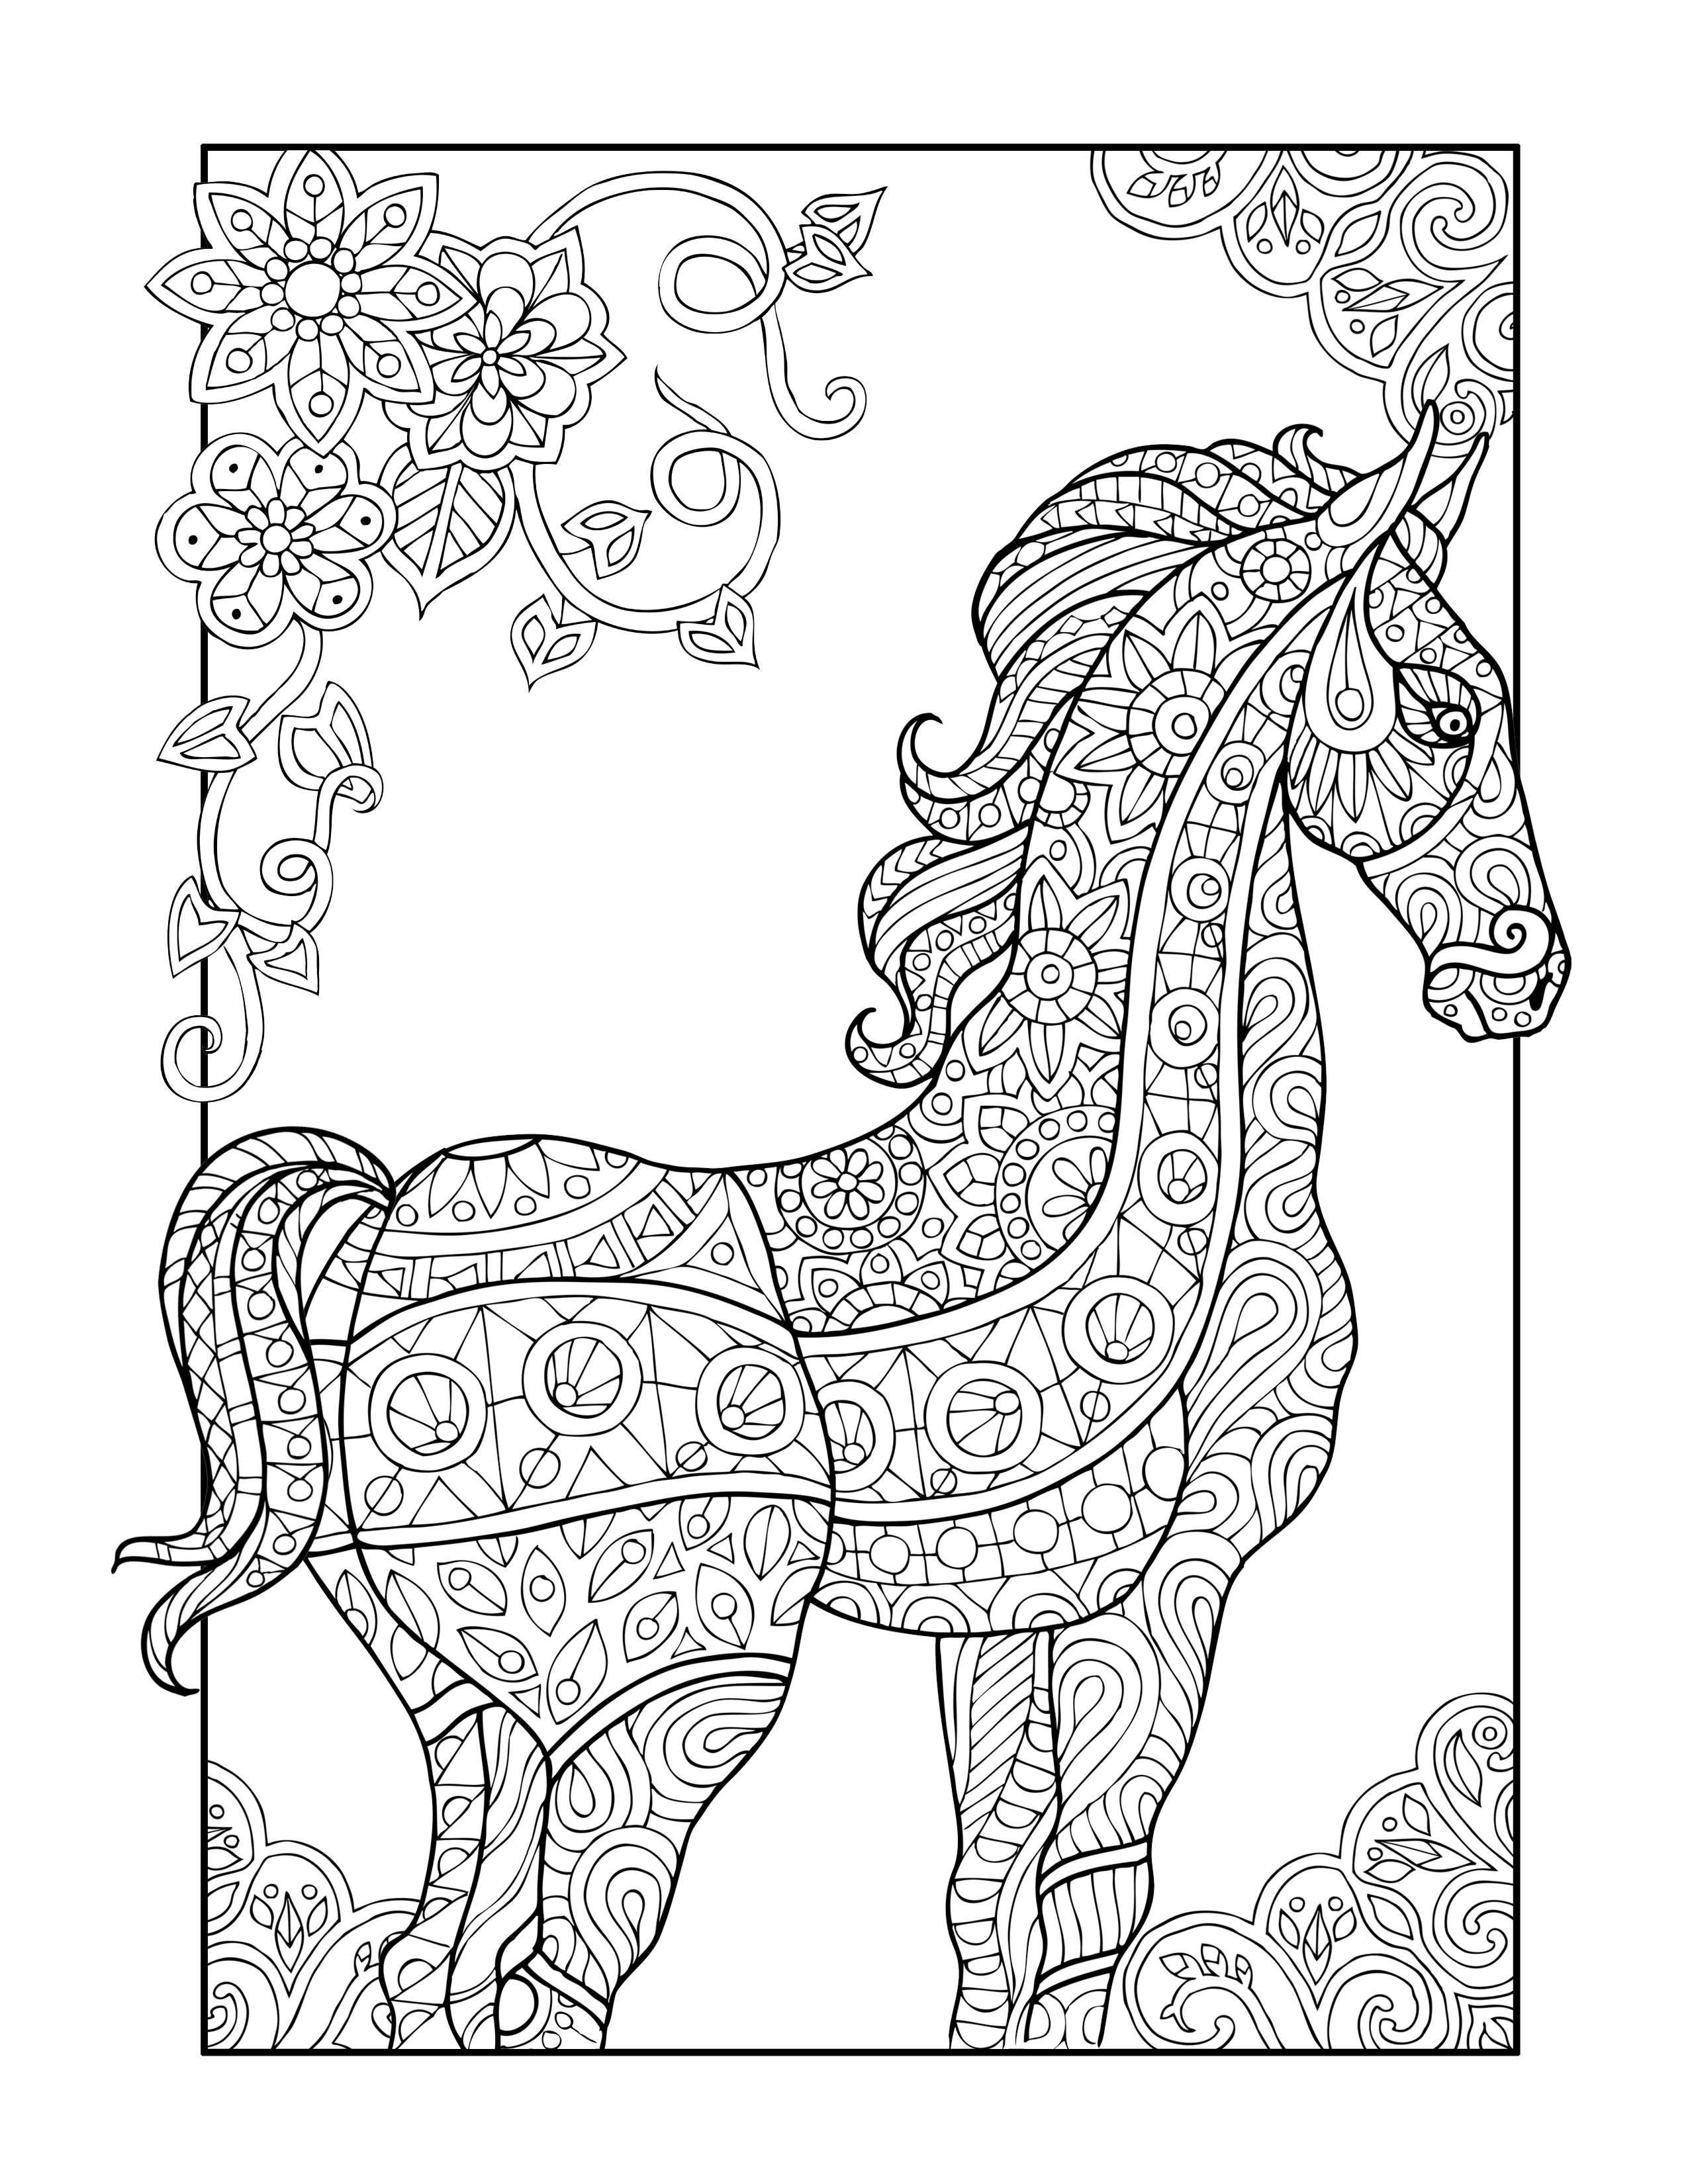 Pin On Adult Coloring Book Pages And Doodles [ 3300 x 2550 Pixel ]